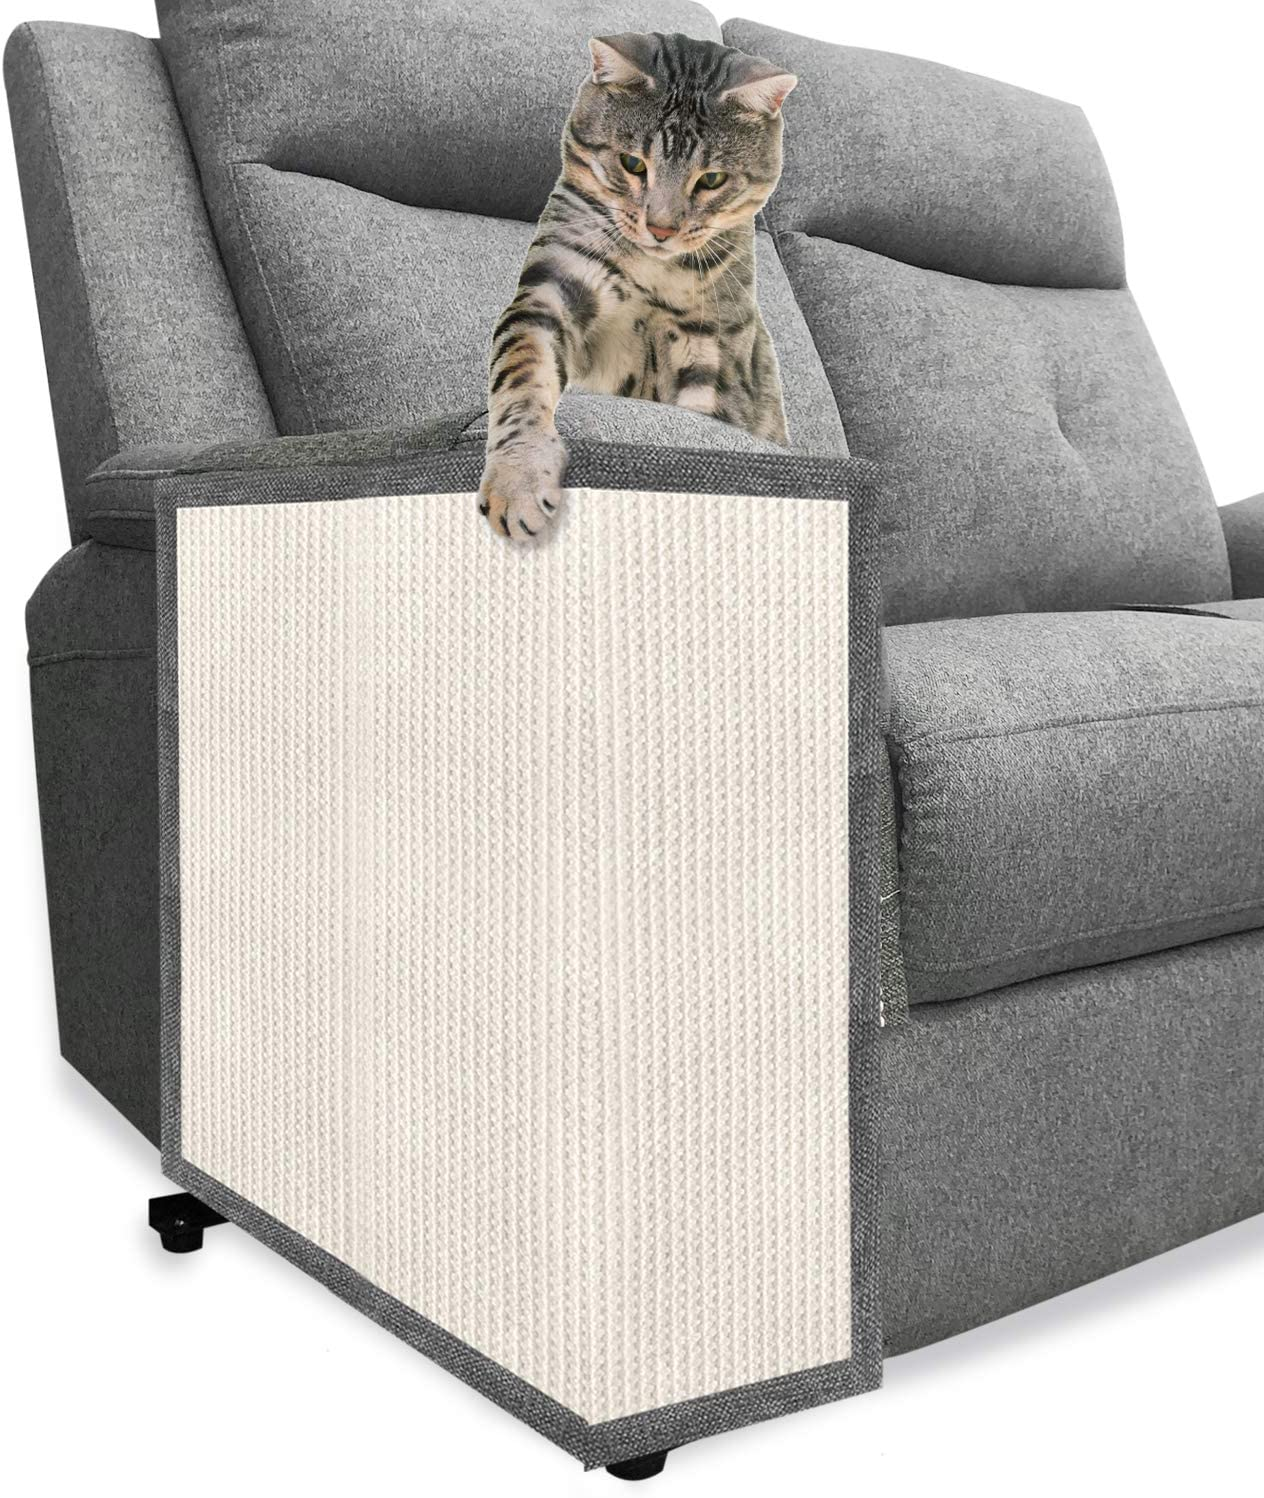 BIGA Cat Scratch Furniture Protector with Natural Sisal for Protecting Couch Chair Sofa